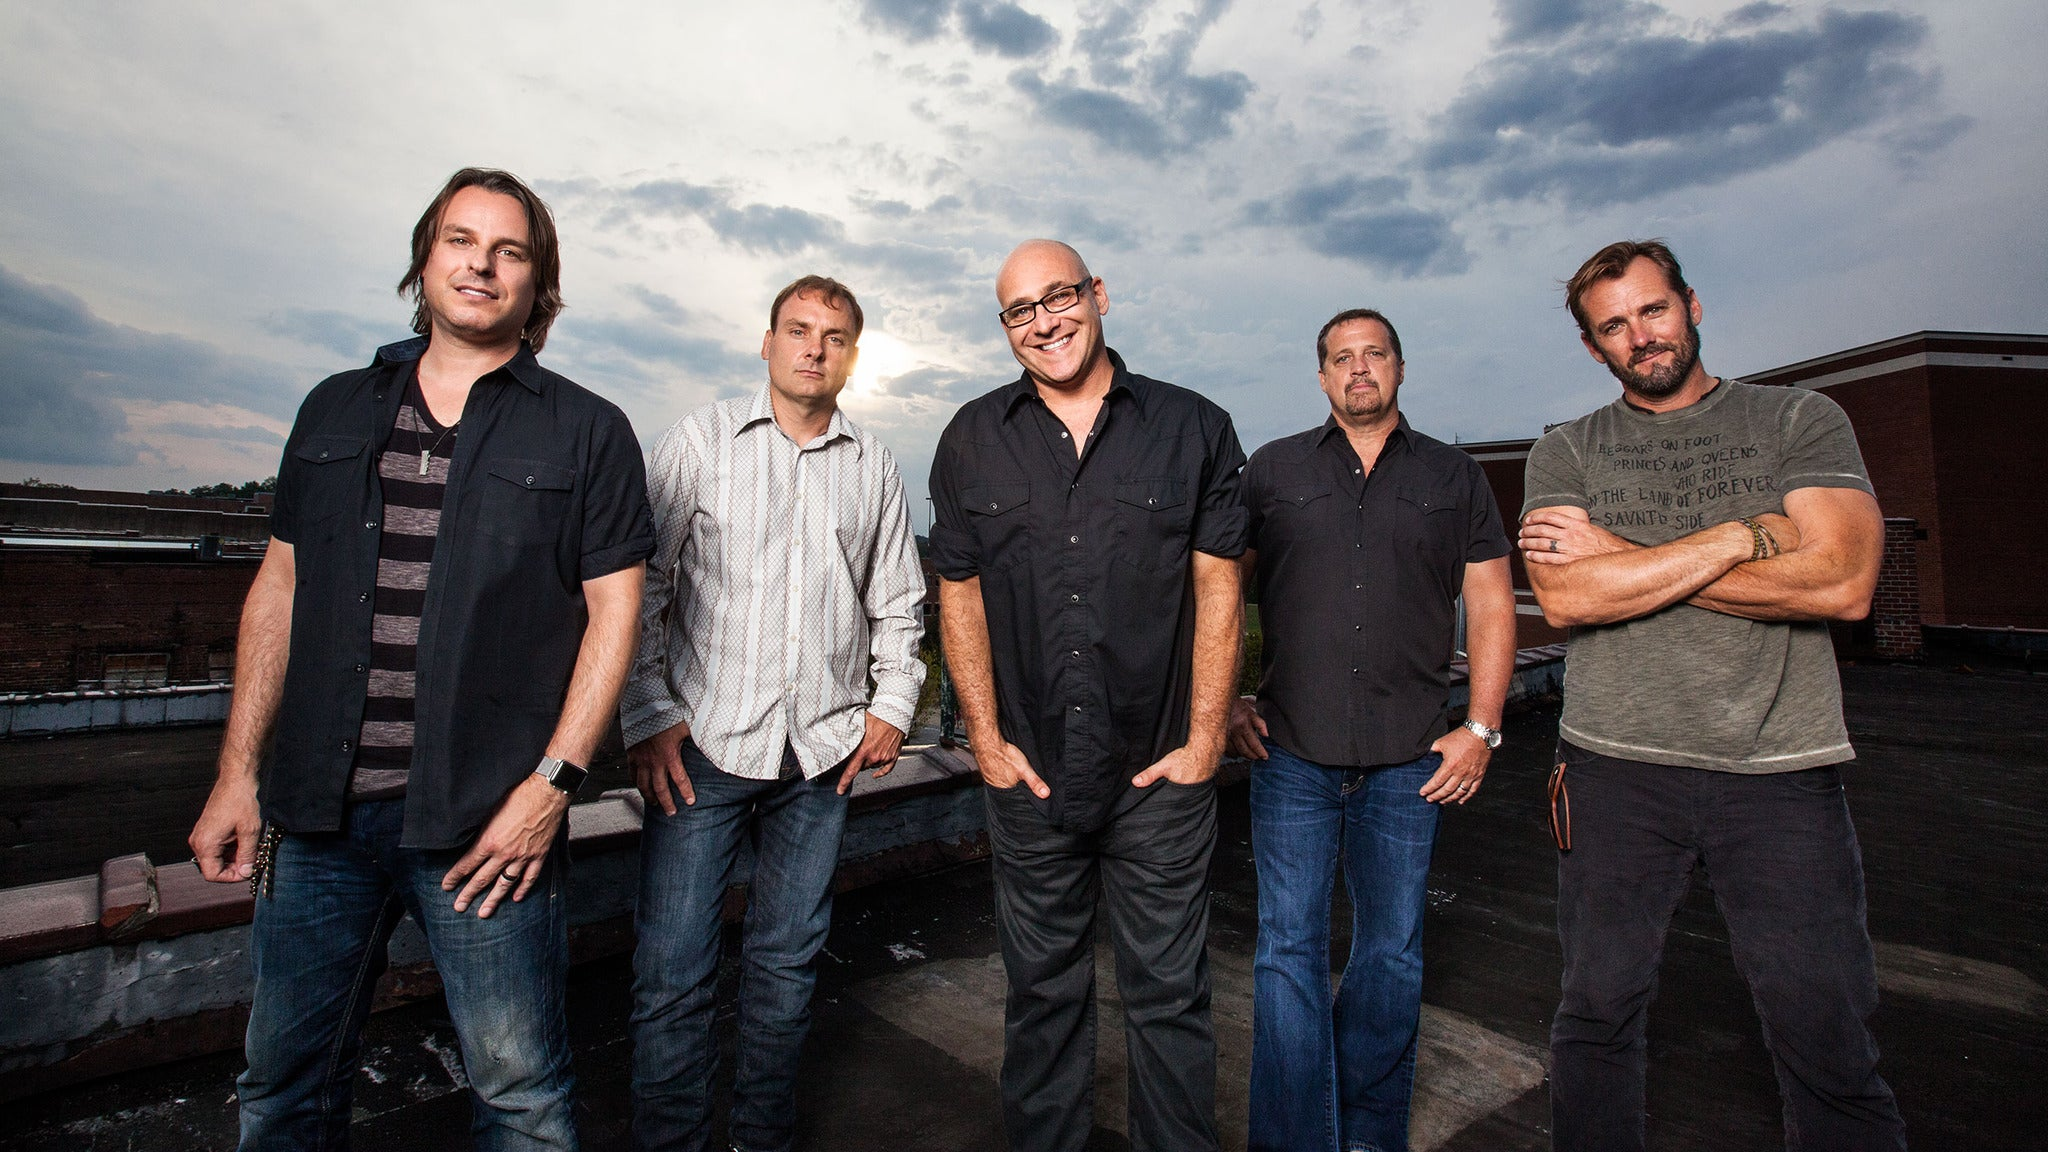 Sister Hazel at The Canyon